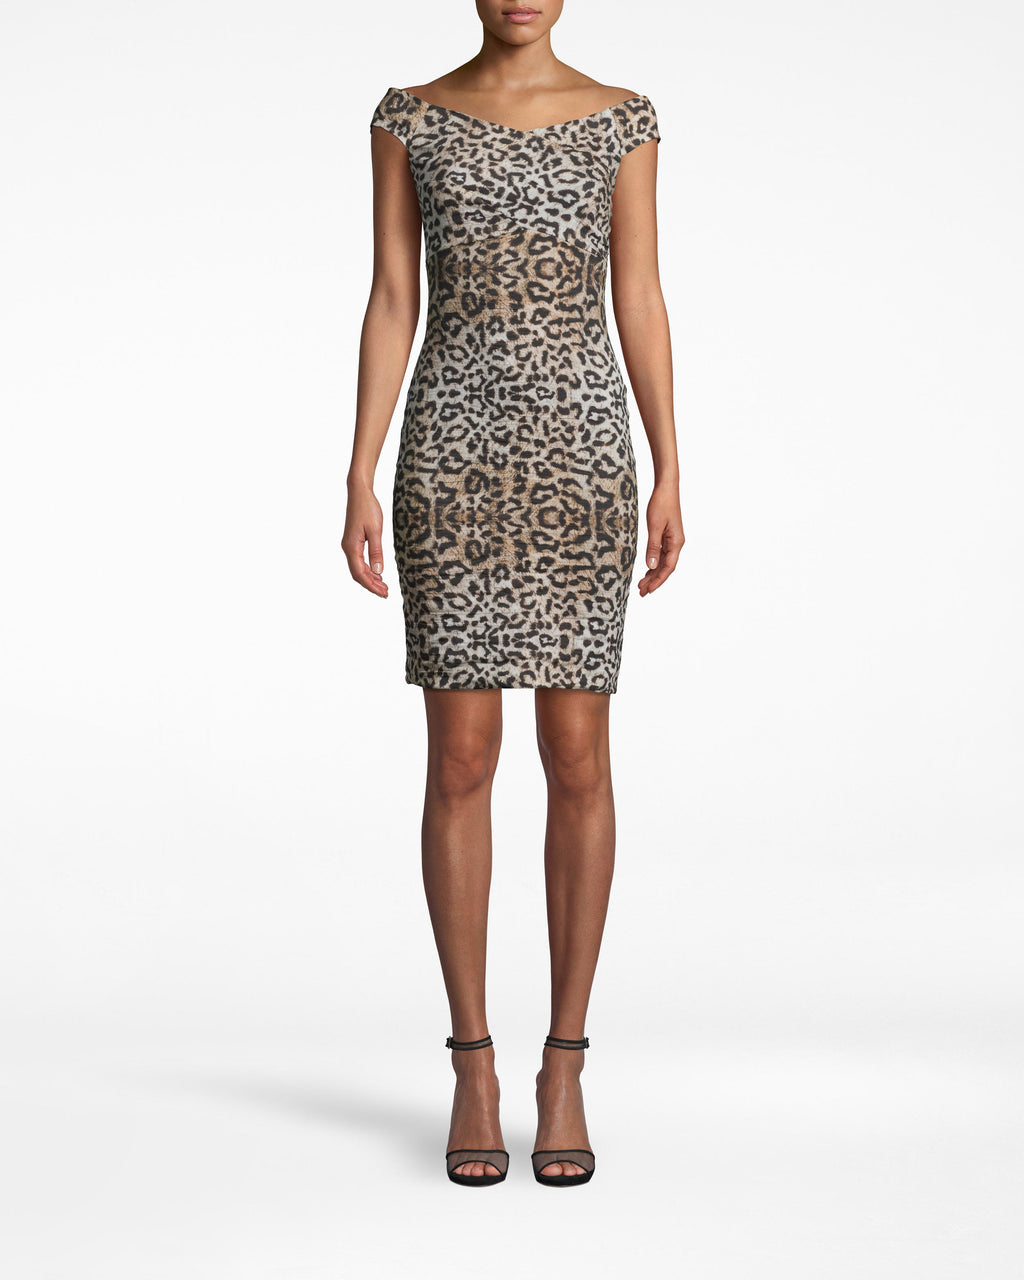 CD10094 - LEOPARD OFF THE SHOULDER DRESS - dresses - short - THIS MINI DRESS IS DESIGNED IN OUR ICONIC COTTON METAL - BUT THIS TIME IN A LEOPARD PRINT. DESIGNED IN A FIGURE HUGGING SILHOUETTE WITH A WRAPPED TOP FOR AN OFF THE SHOULDER LOOK. PAIR WITH SIMPLE JEWELRY AND HEELS.